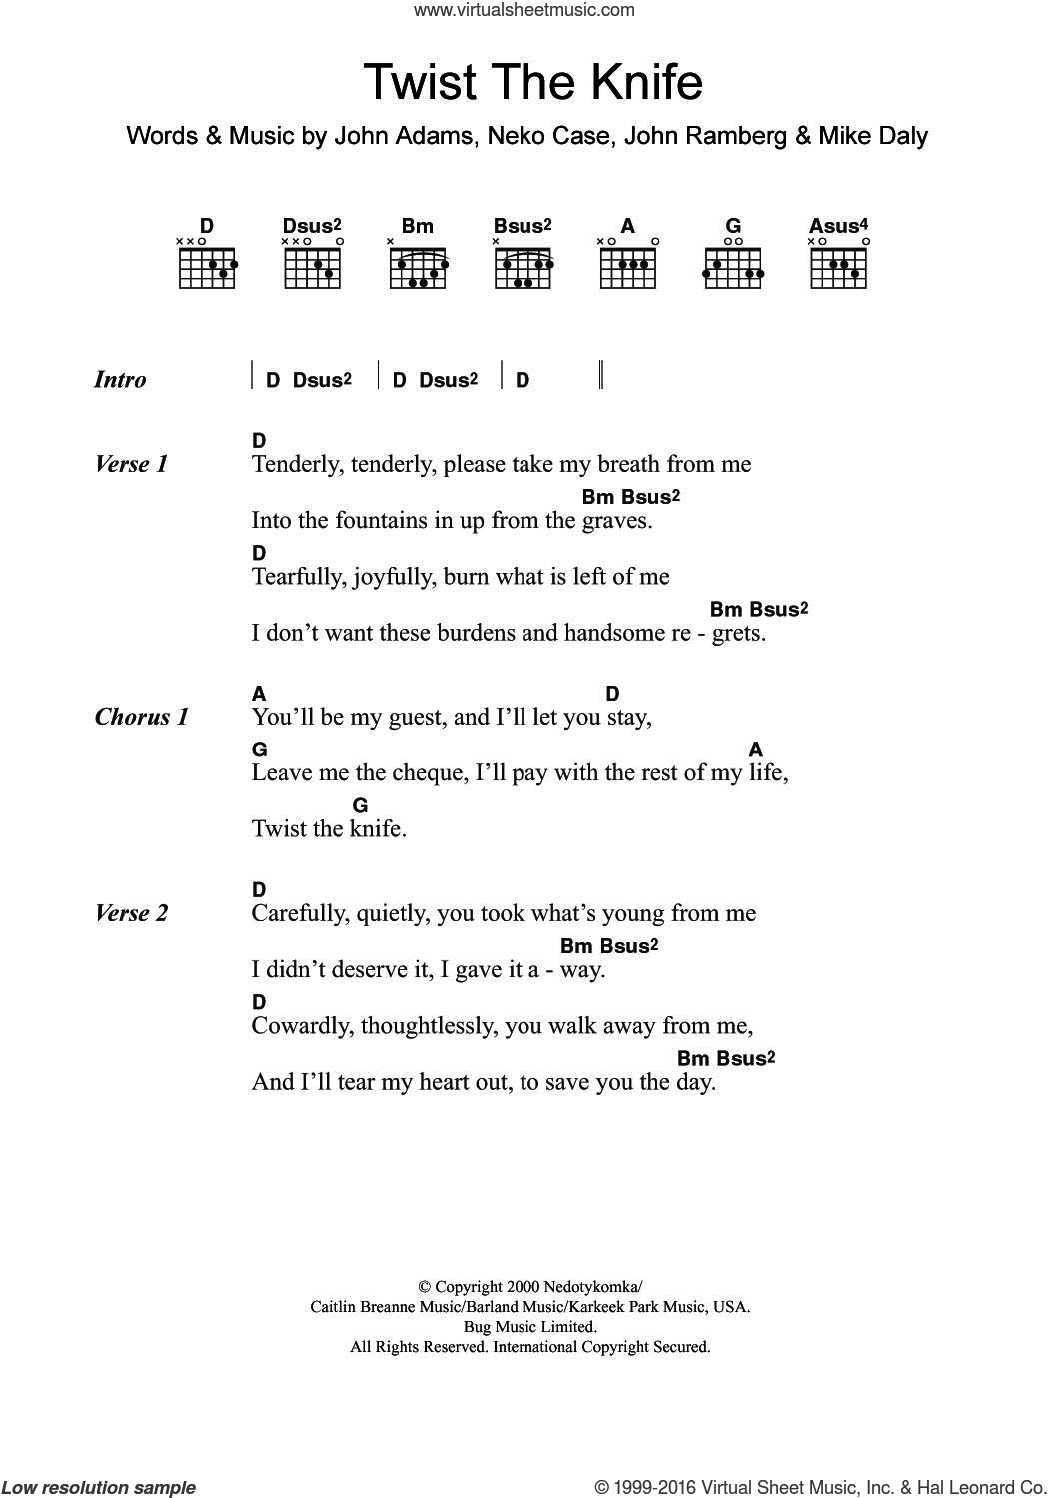 Twist The Knife sheet music for guitar (chords) by Neko Case & Her Boyfriends, John Adams, John Ramberg, Mike Daly and Neko Case, intermediate skill level